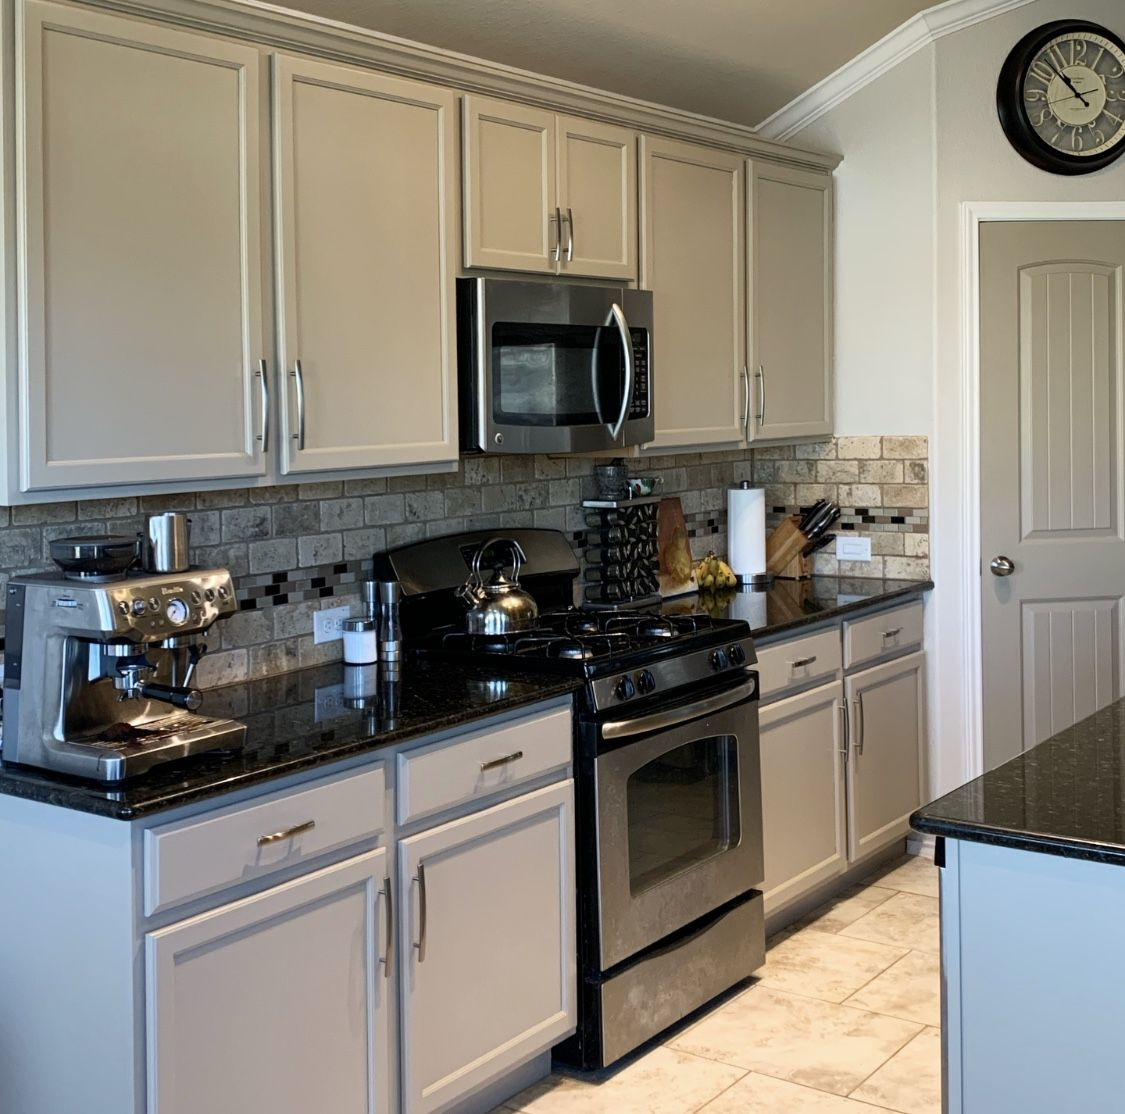 Taupe Kitchen Cabinets Taupe Kitchen Taupe Kitchen Cabinets Kitchen Remodel